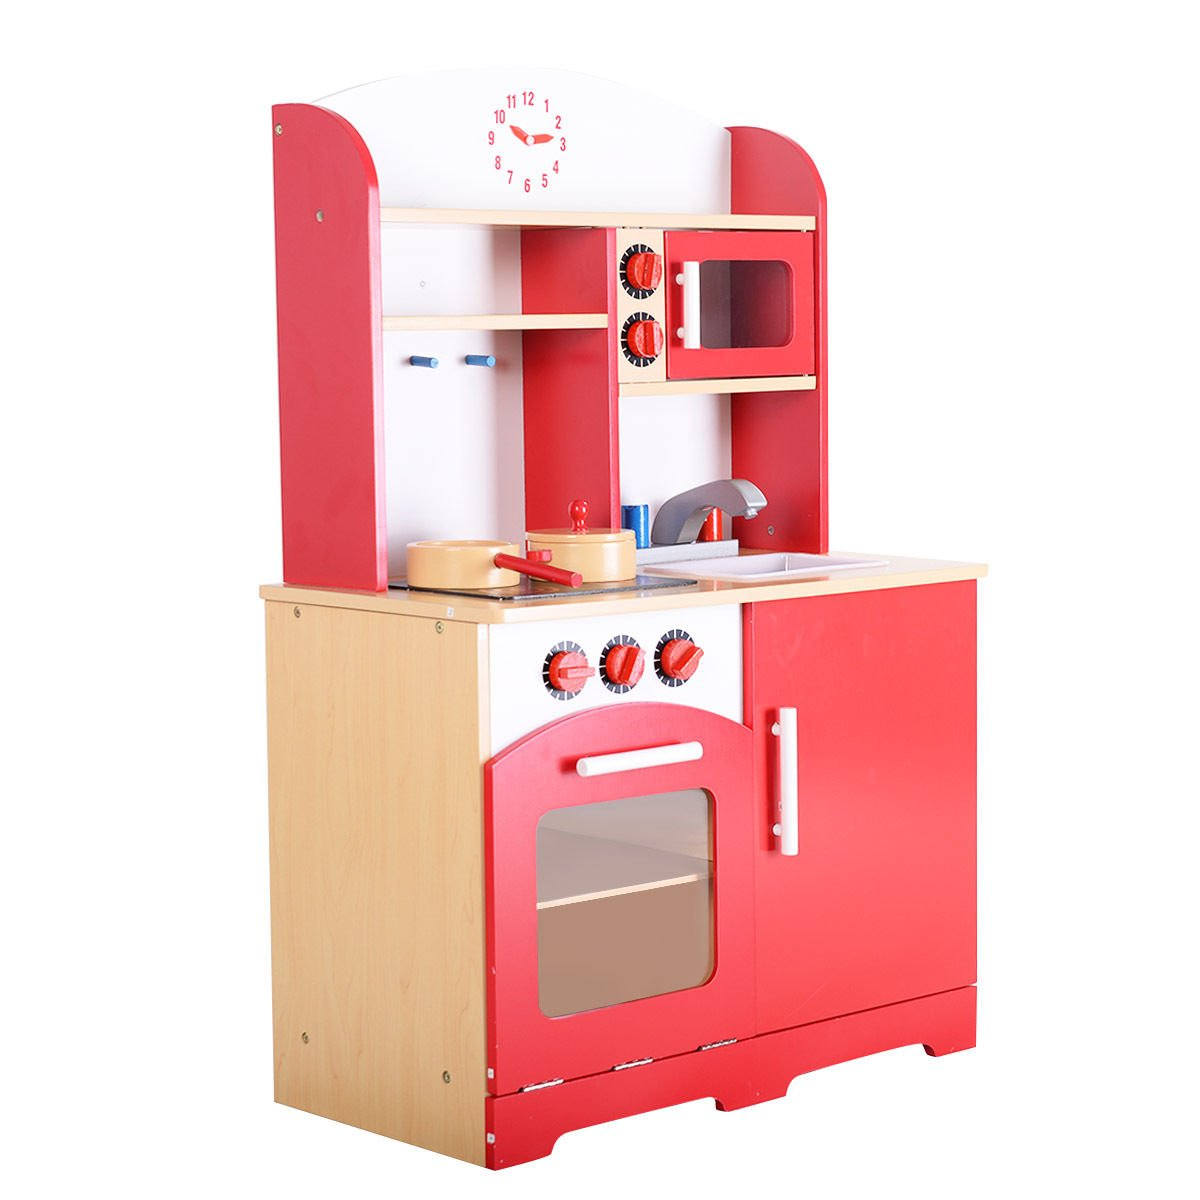 Amazon com giantex wood kitchen play set for kids cooking pretend toddler playset red toys games